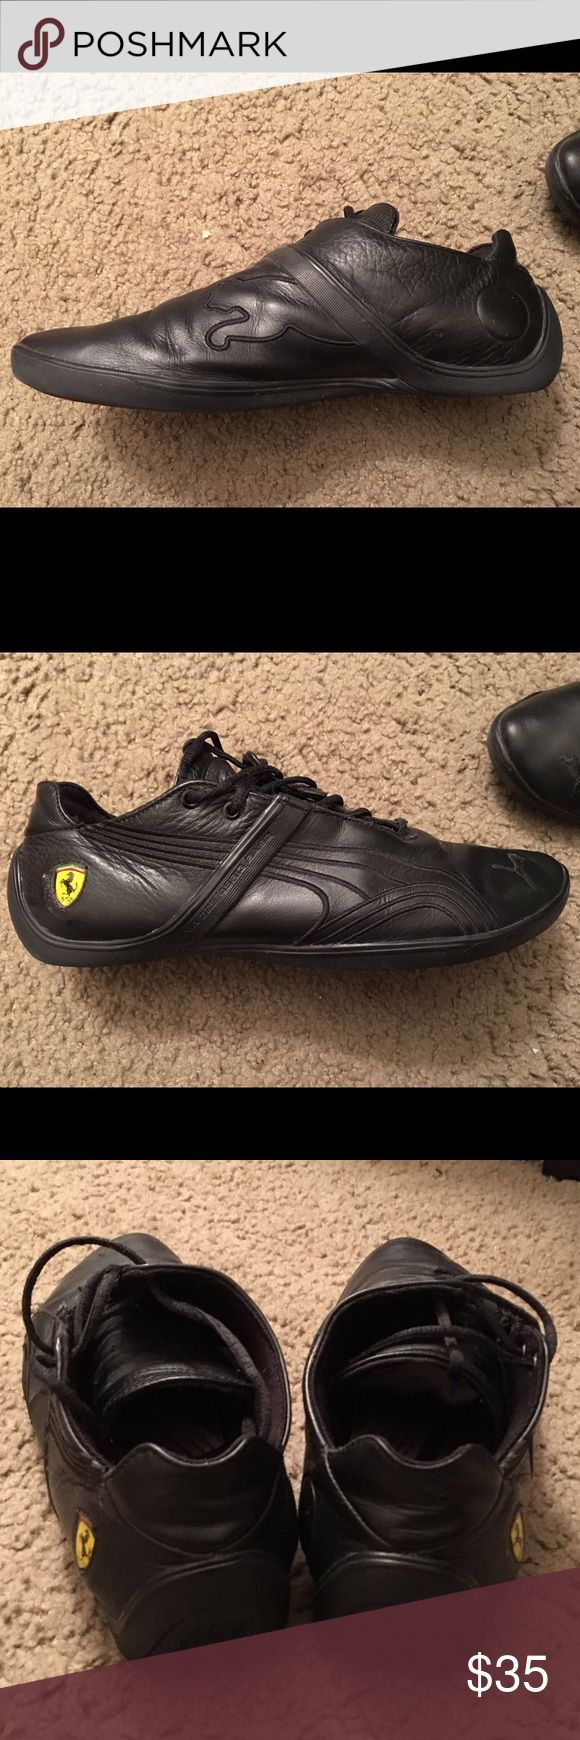 Ferrari shoes Used couple times only in a good condition paid over 100$ for this from puma website Puma Shoes